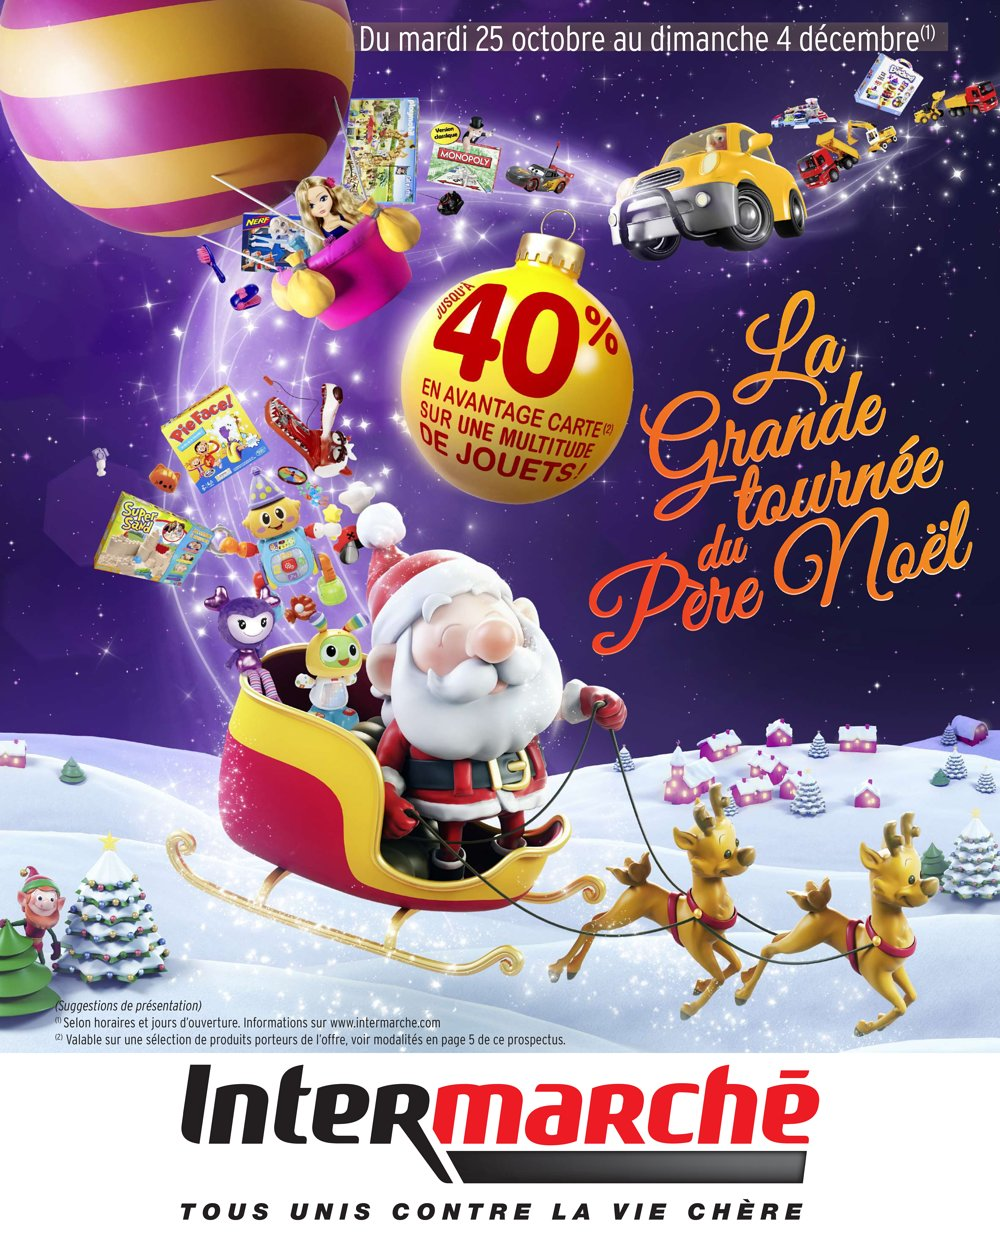 catalogue jouets noel 2018 intermarche Catalogue Intermarché Super Noël 2016 | Catalogue de jouets catalogue jouets noel 2018 intermarche